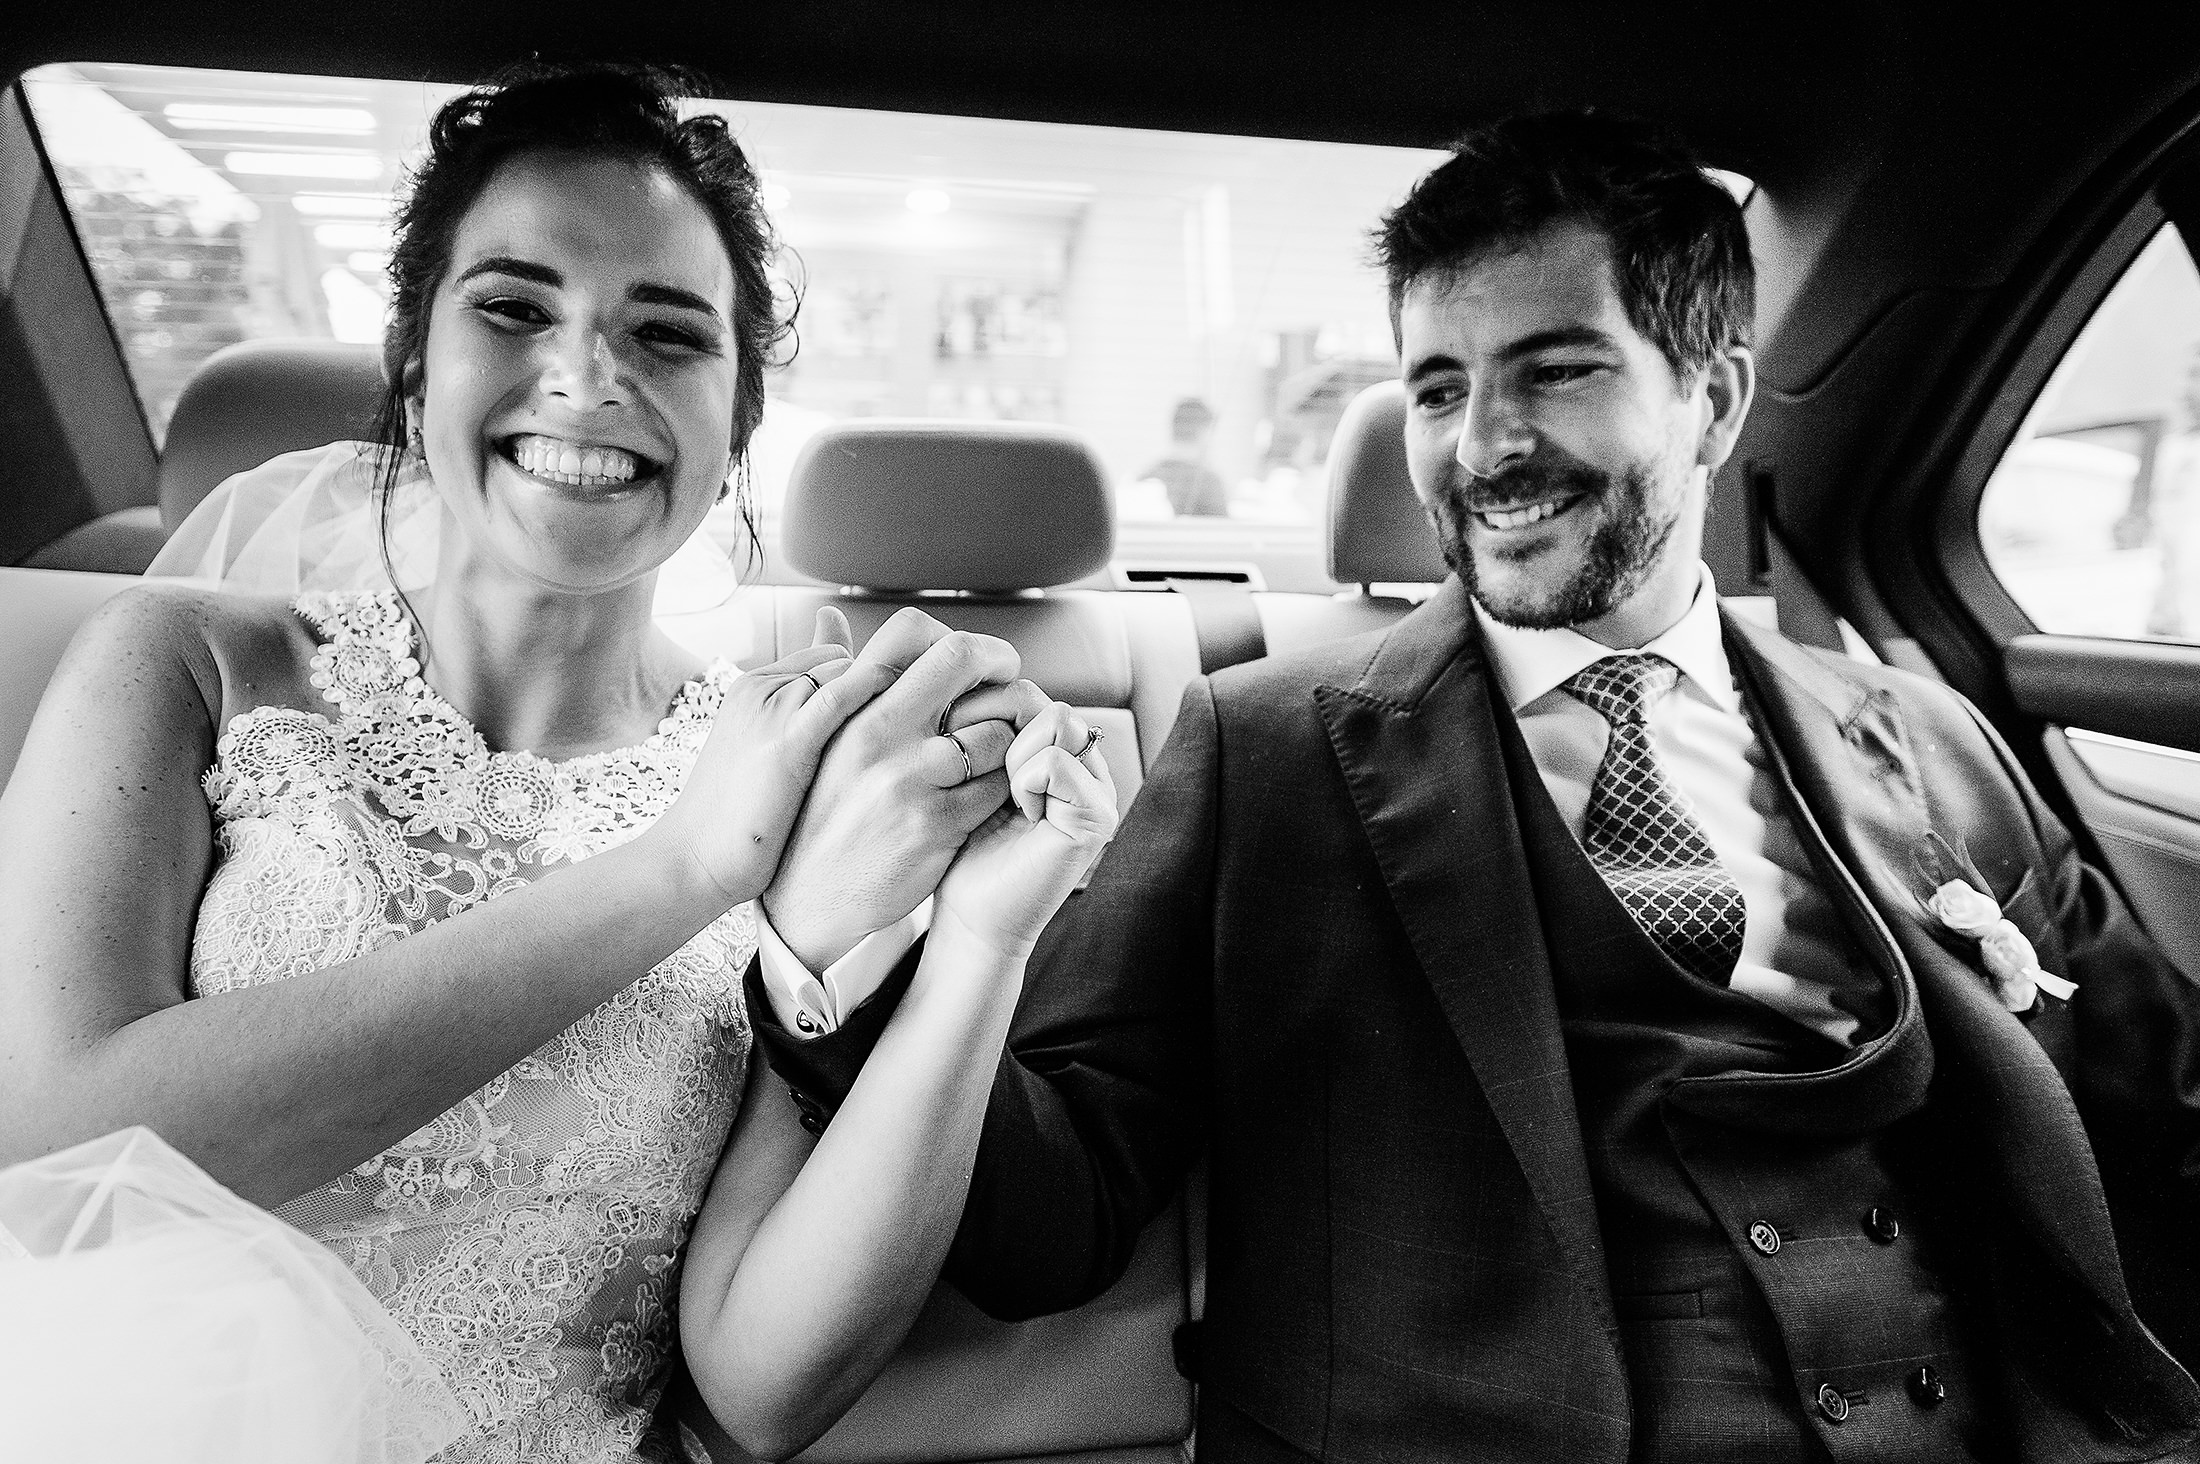 Bride and groom in the car holding hands showing rings